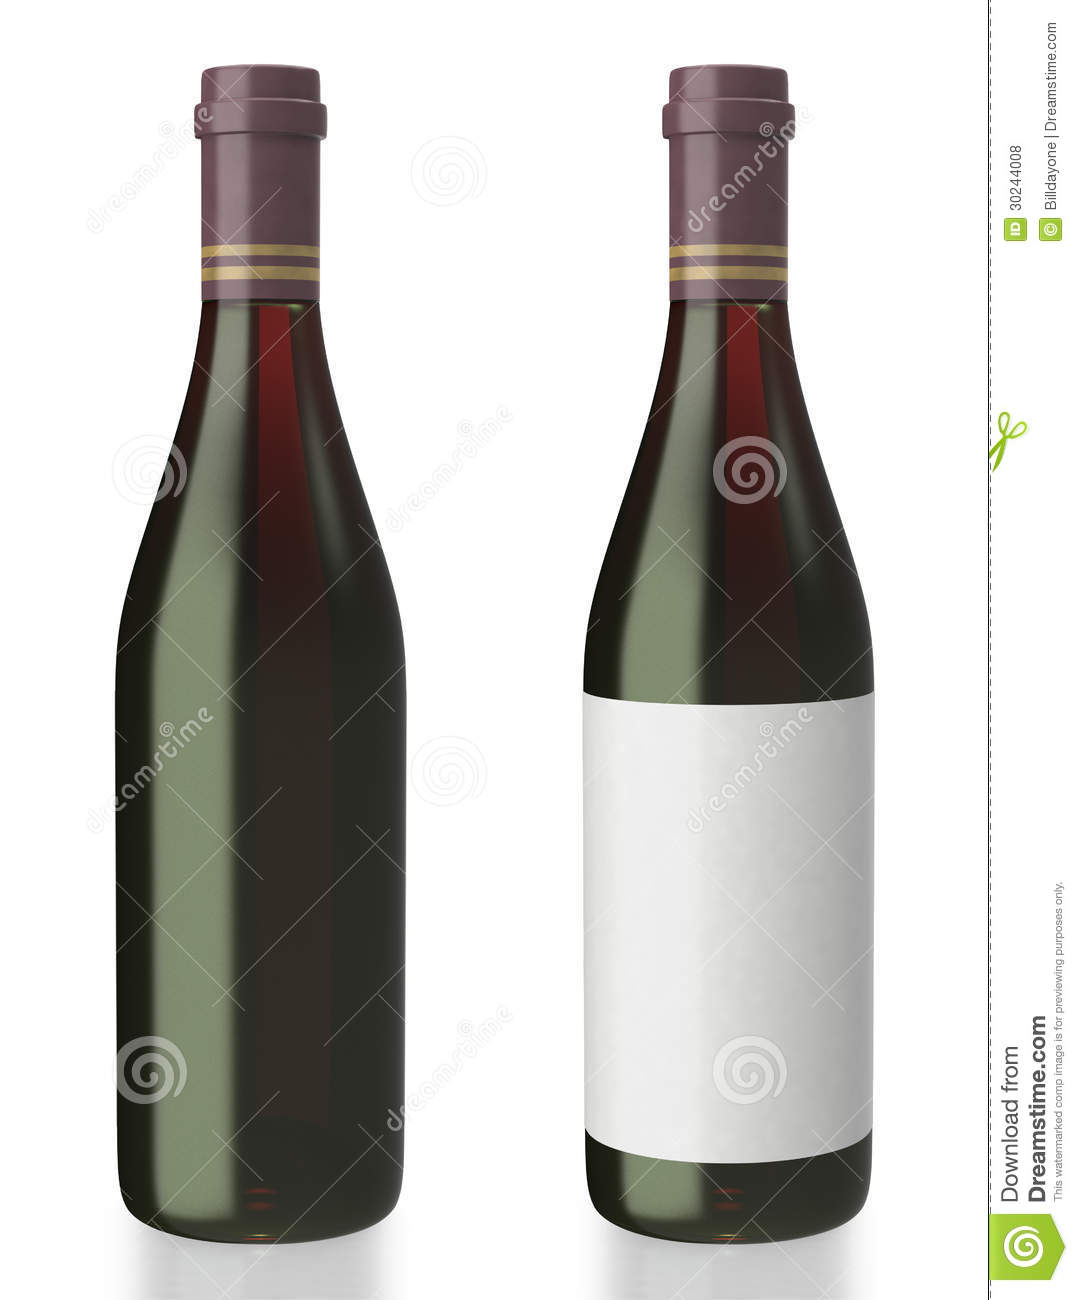 Red Wine Bottle On White Background Royalty Free Stock